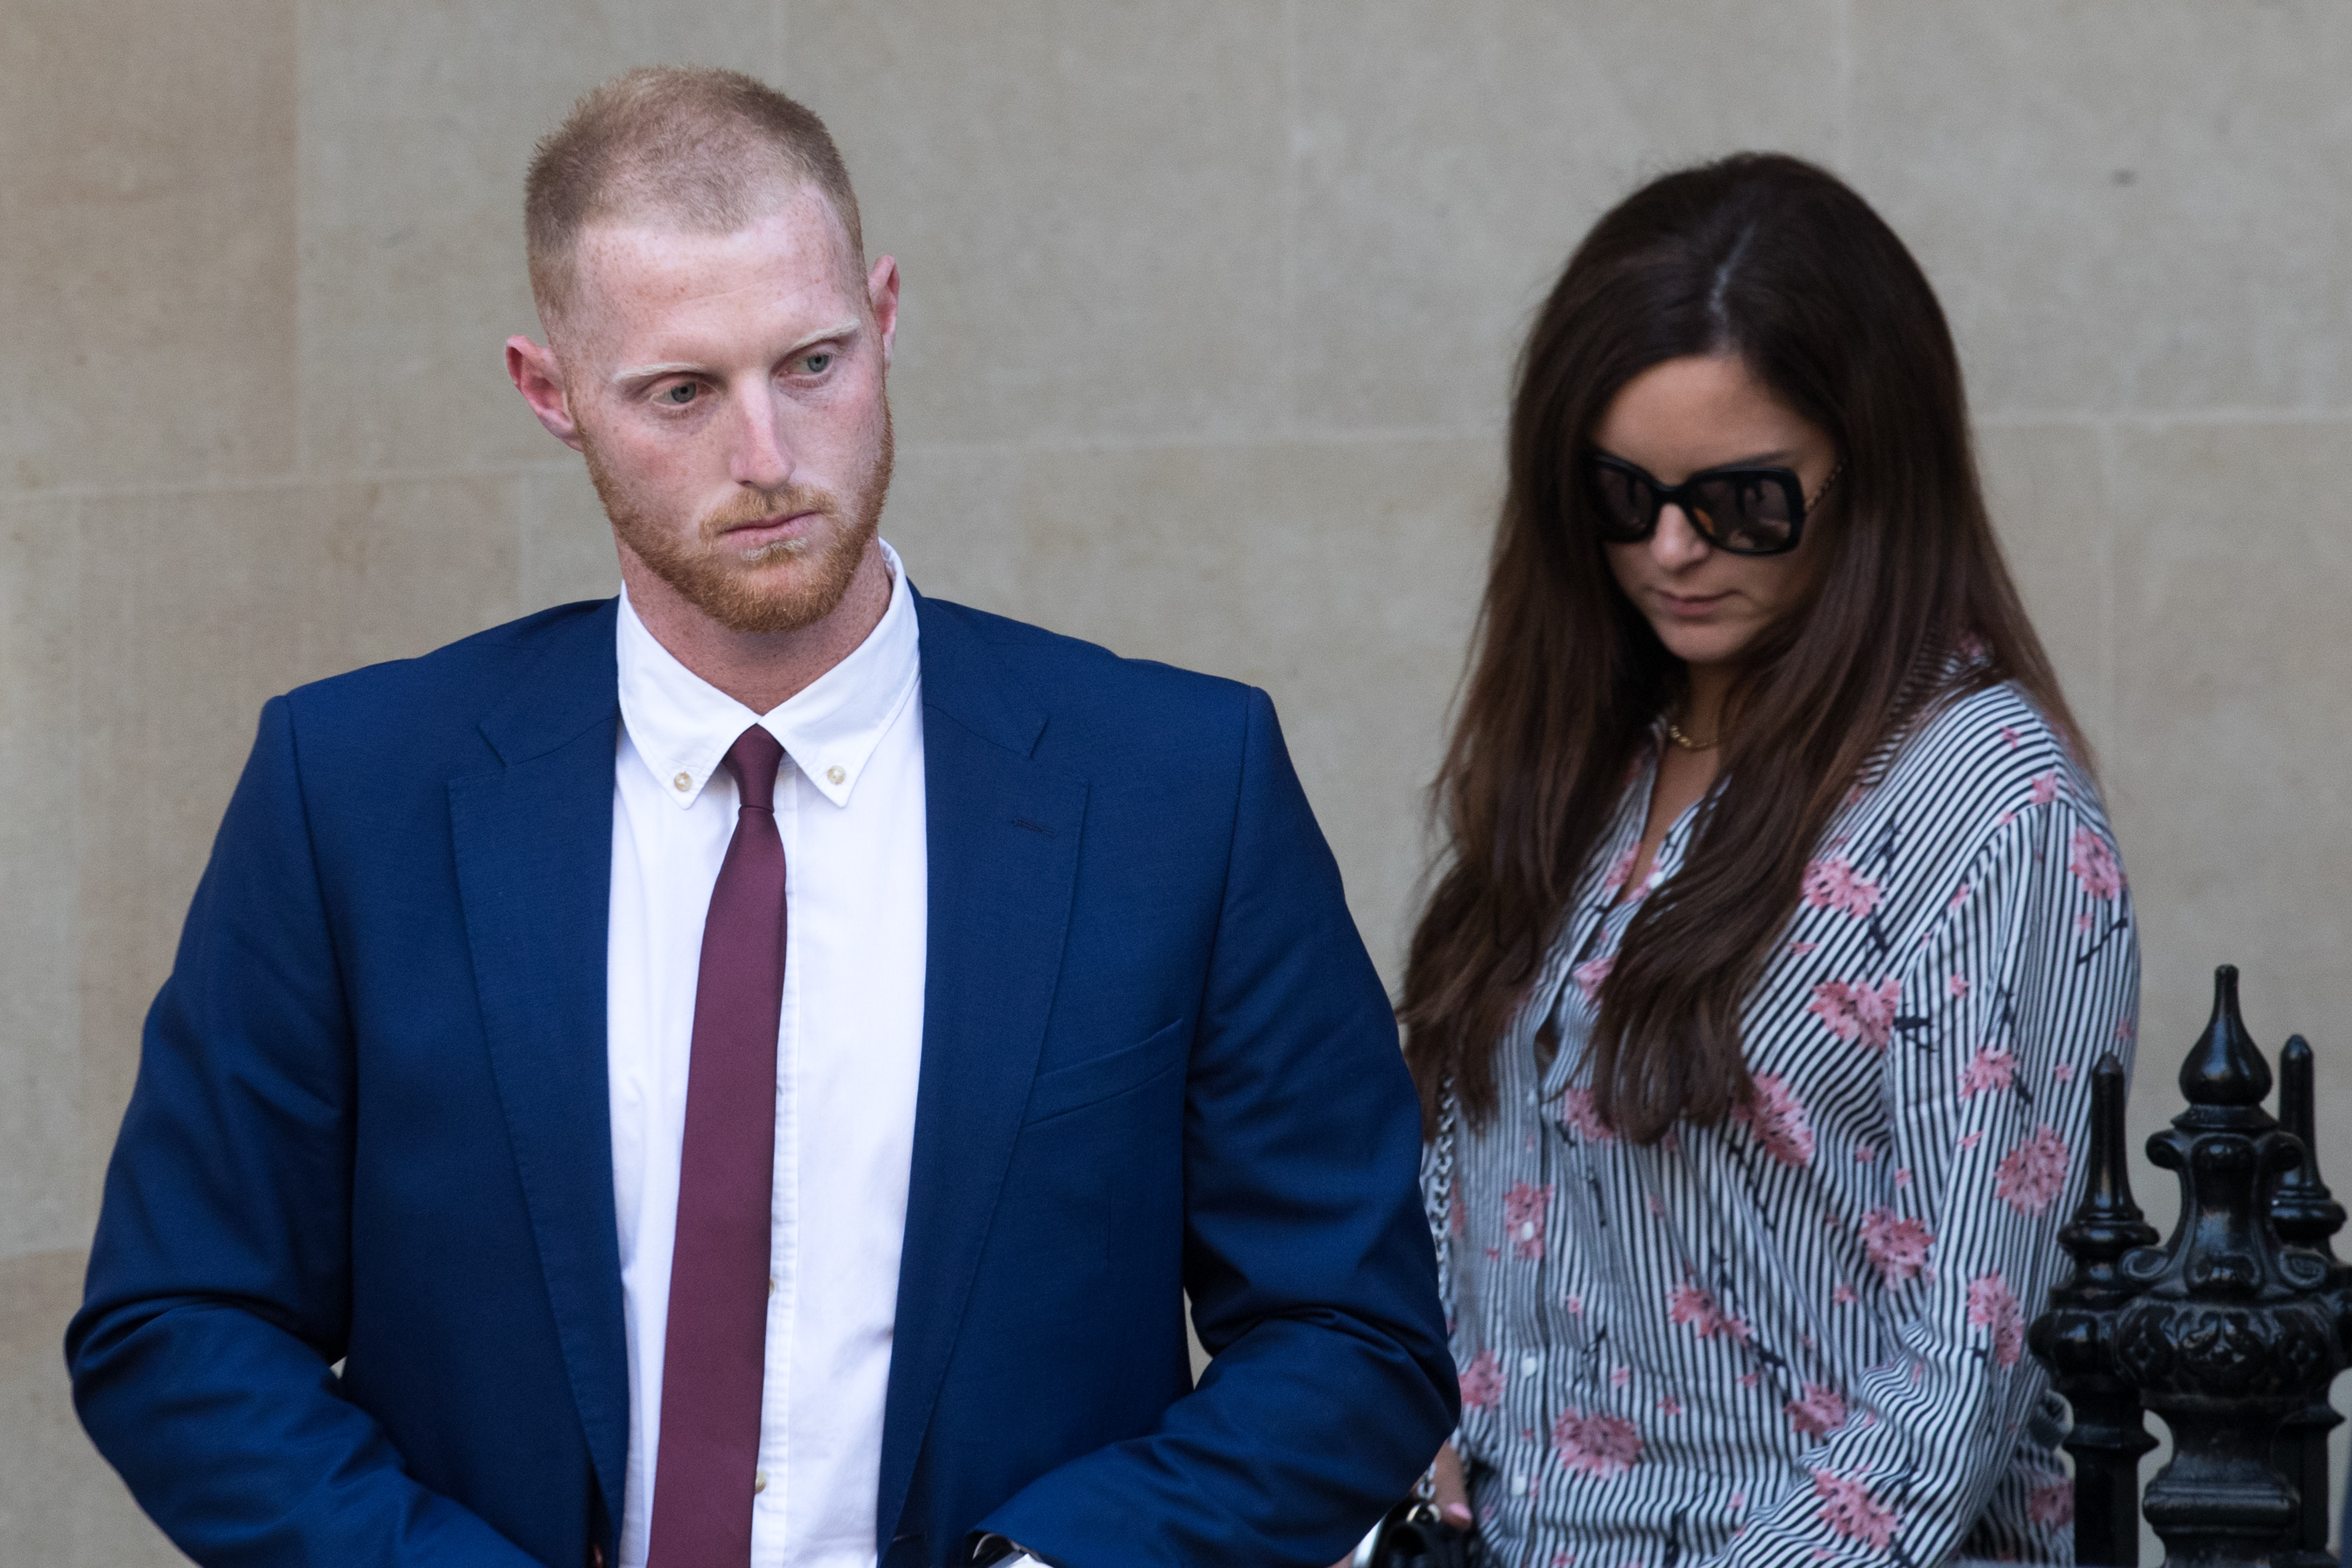 Ben Stokes is on trial for affray at Bristol Crown Court | Getty